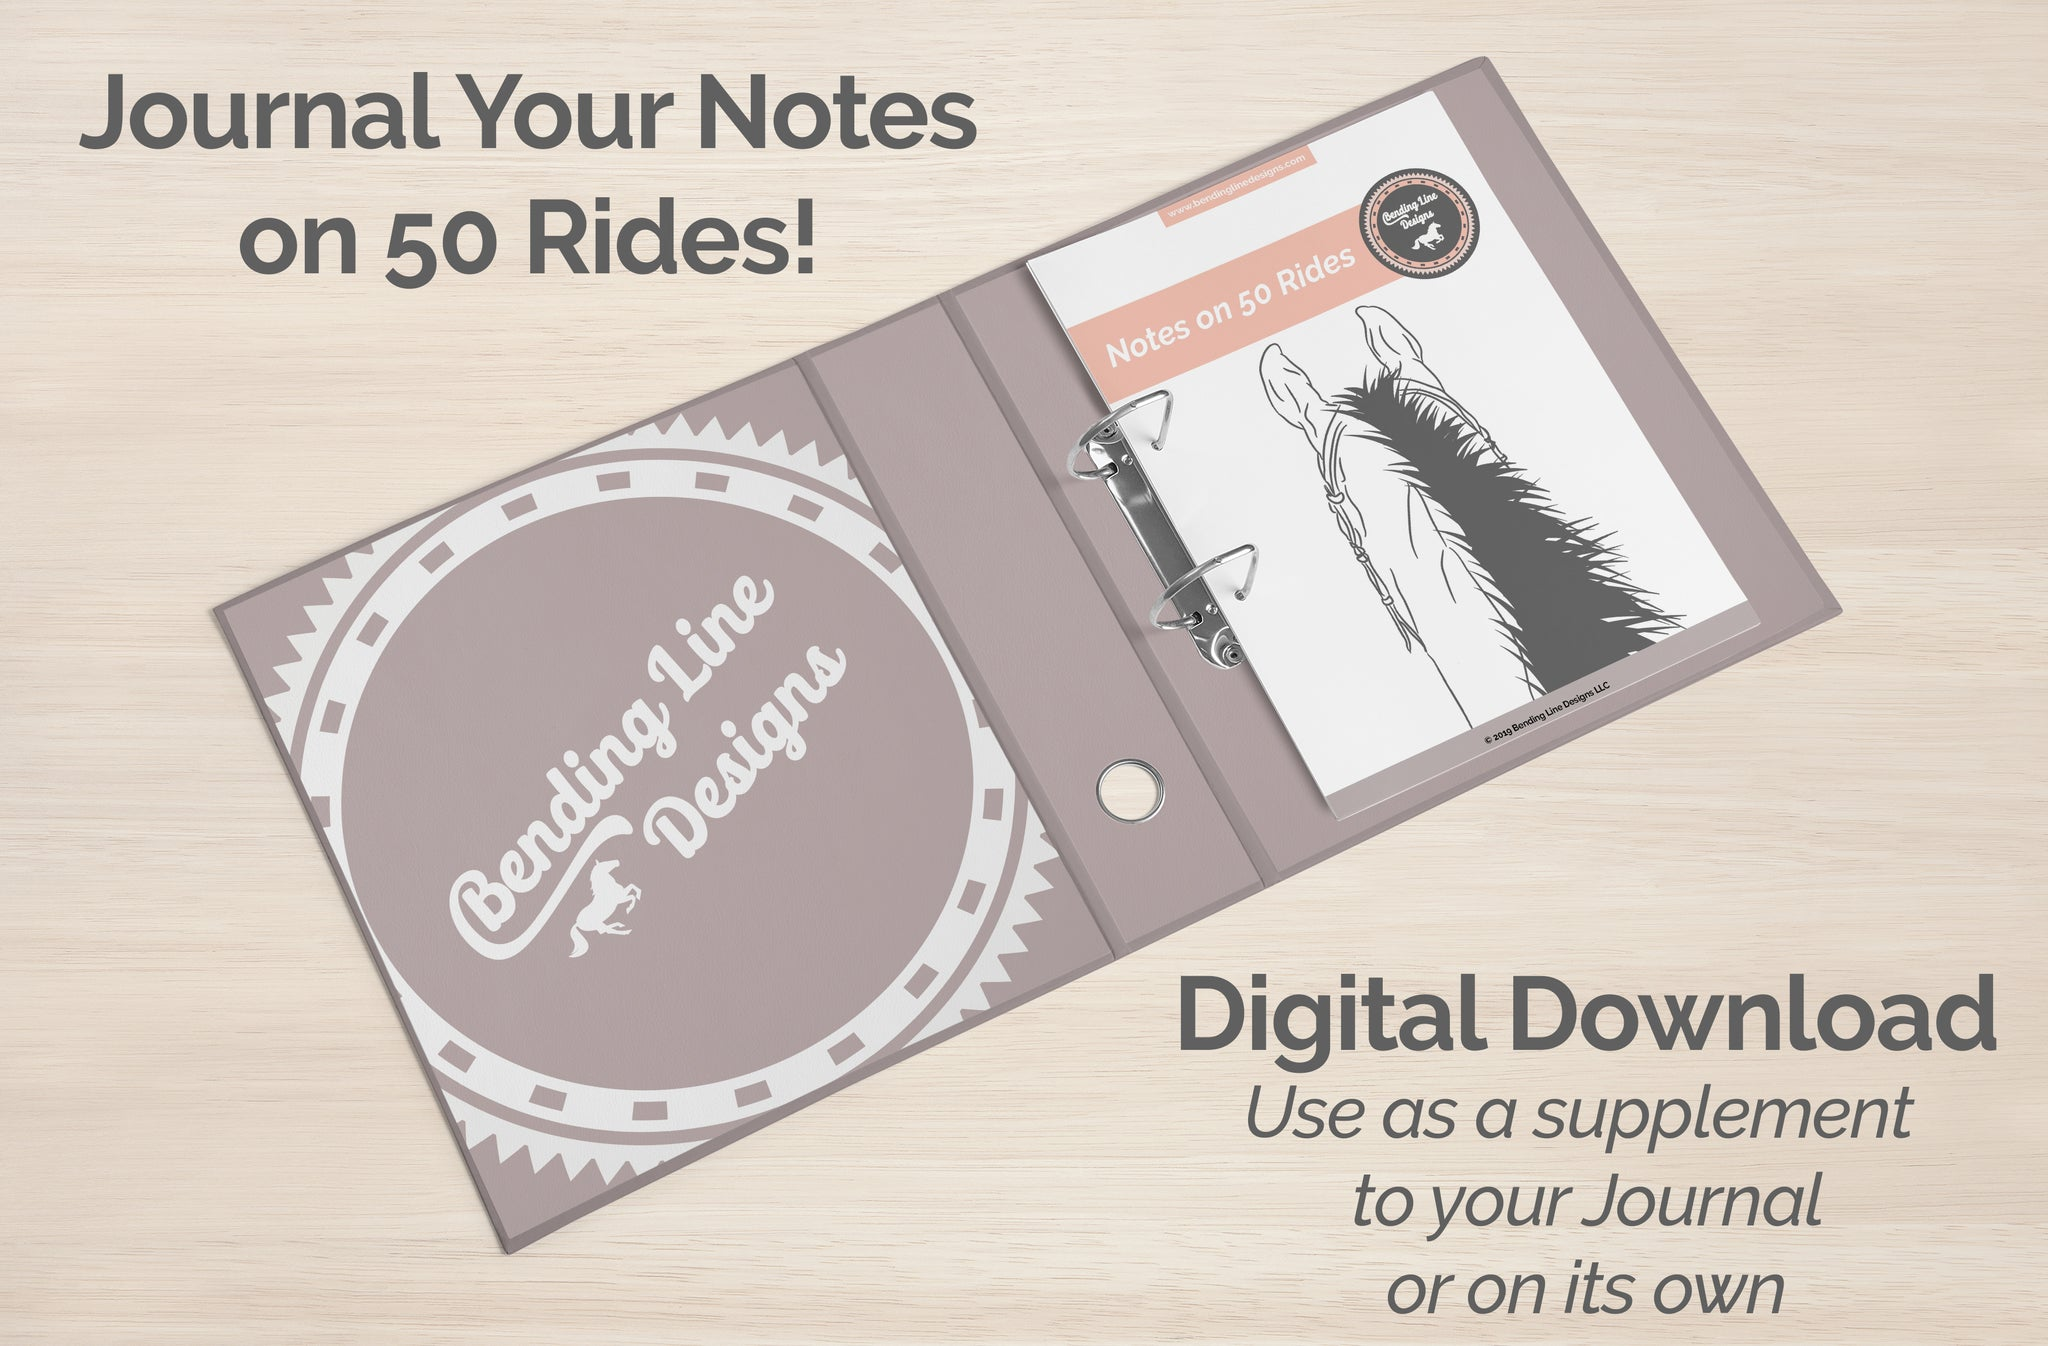 Notes on 50 Rides